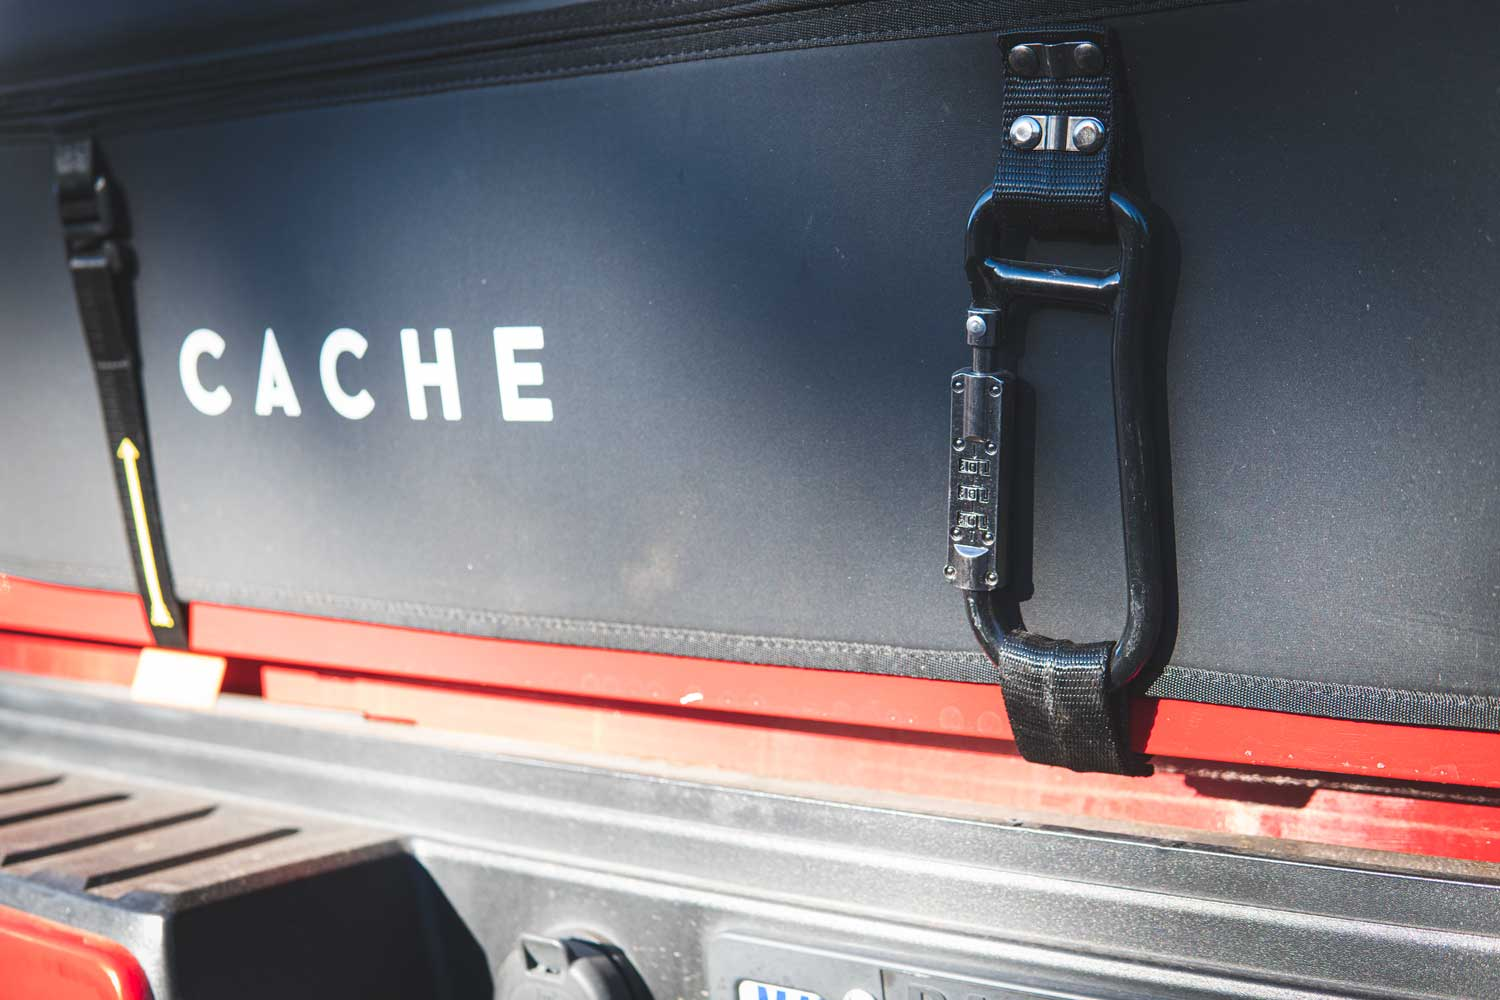 Cache Basecamp System - Modular Tailgate Pad